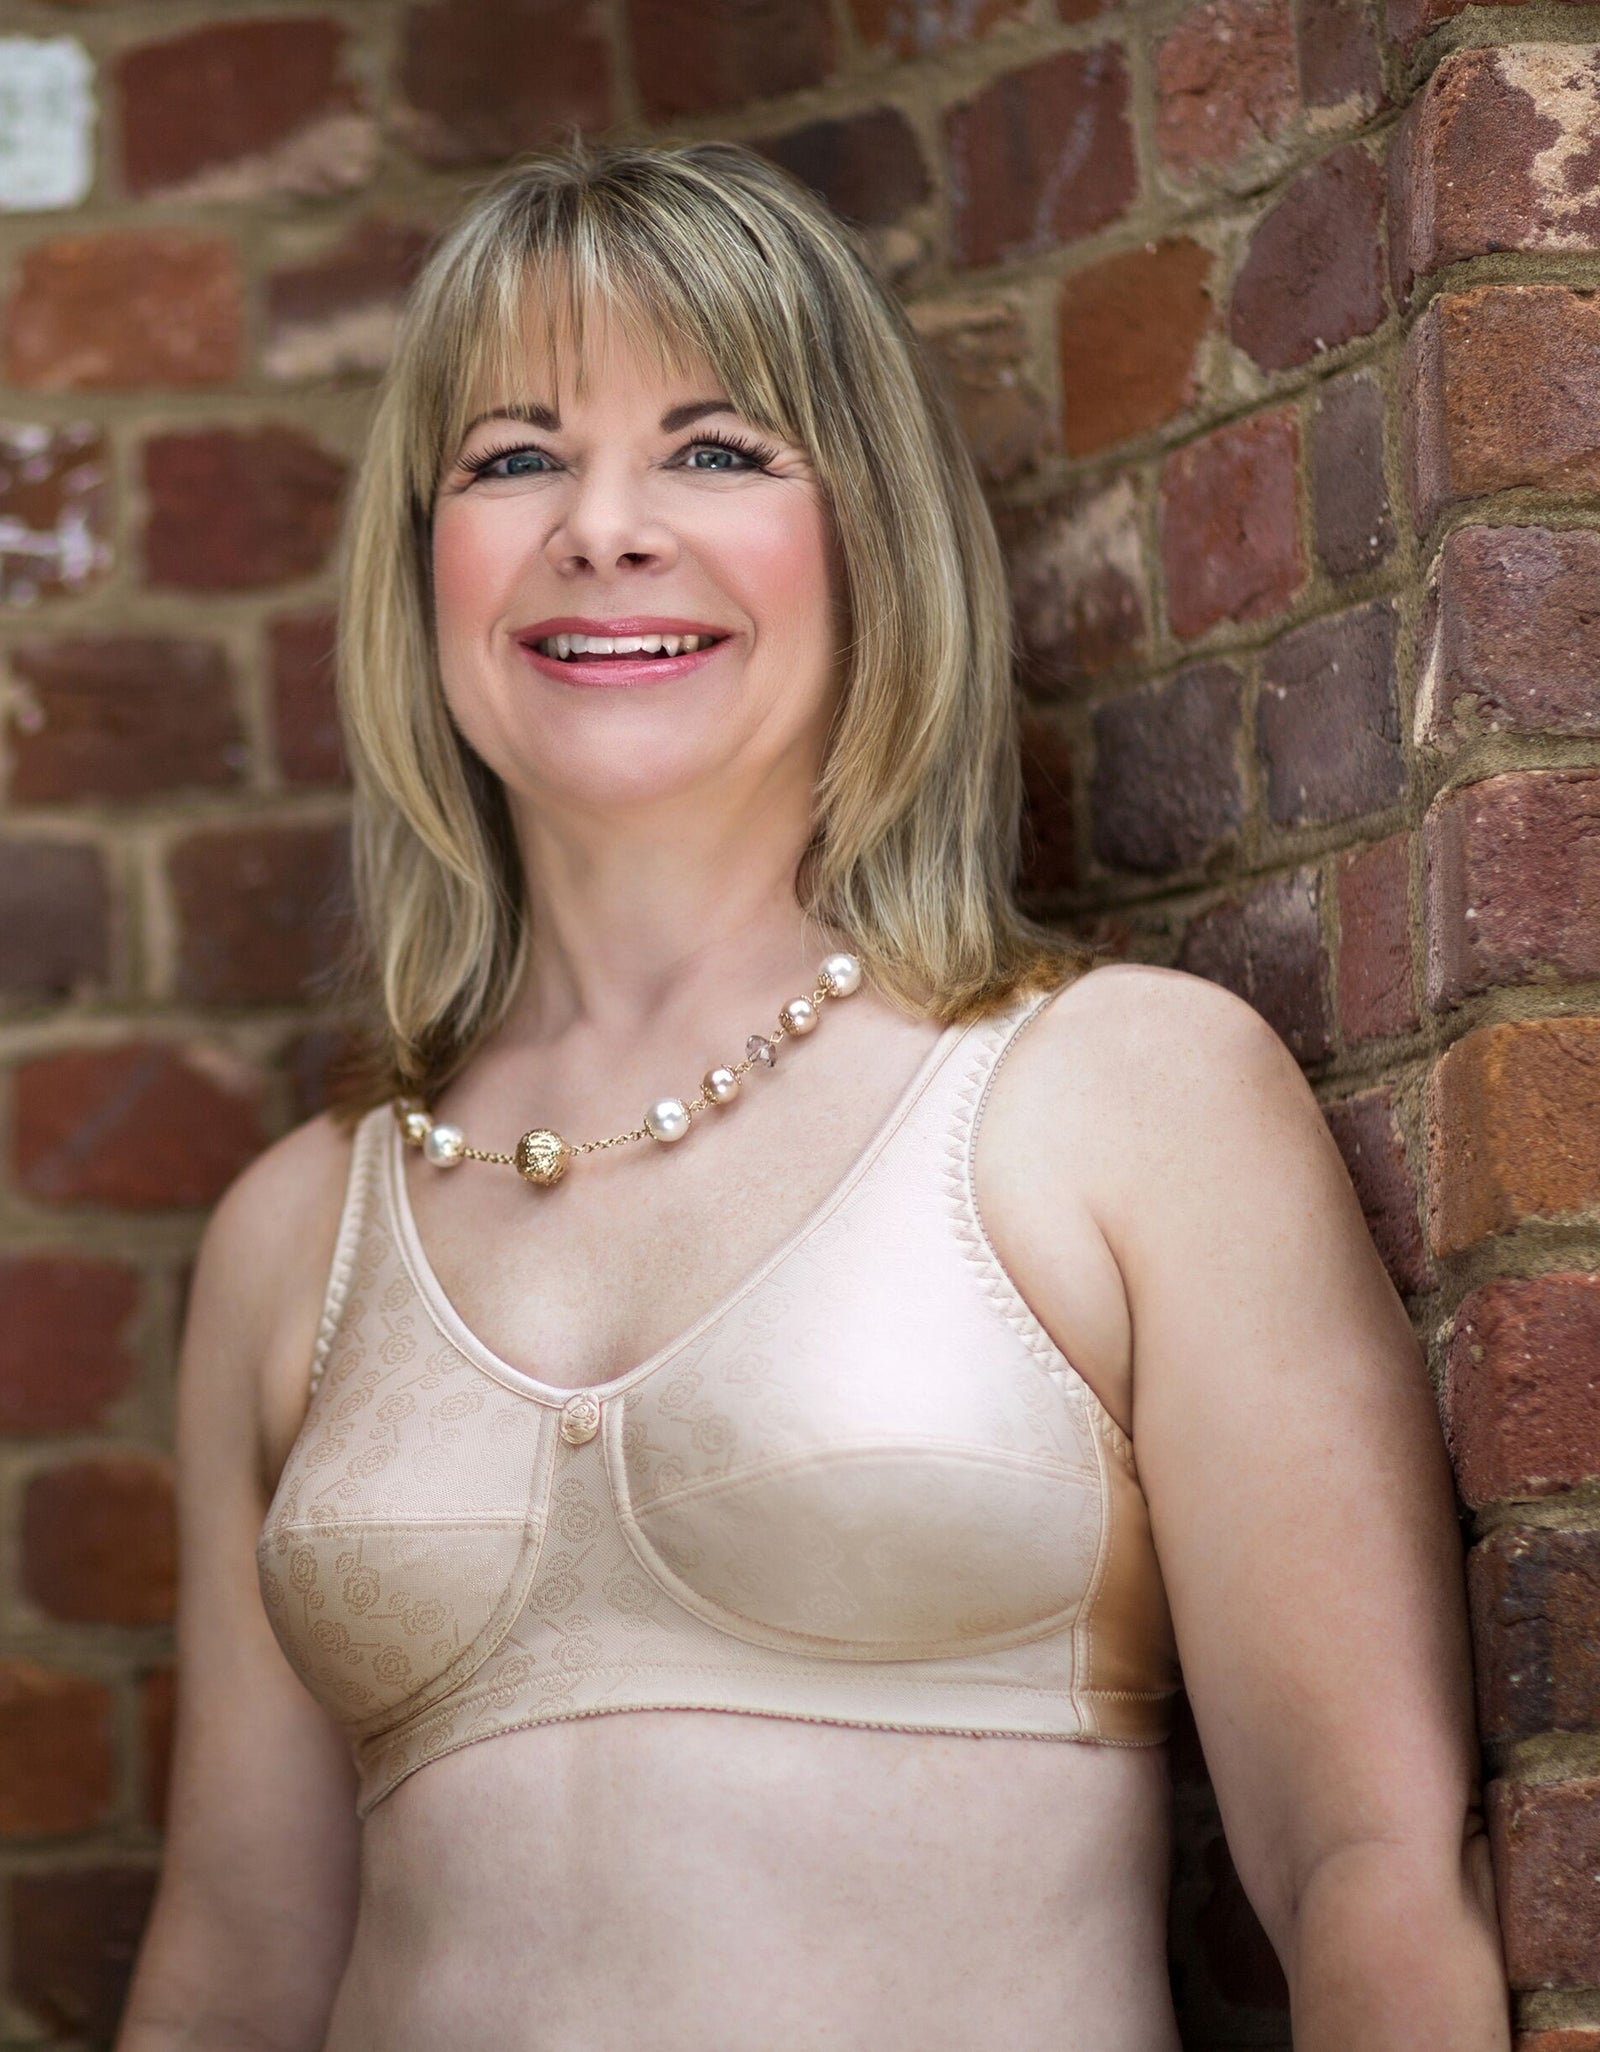 ABC Rose Contour Mastectomy Bra